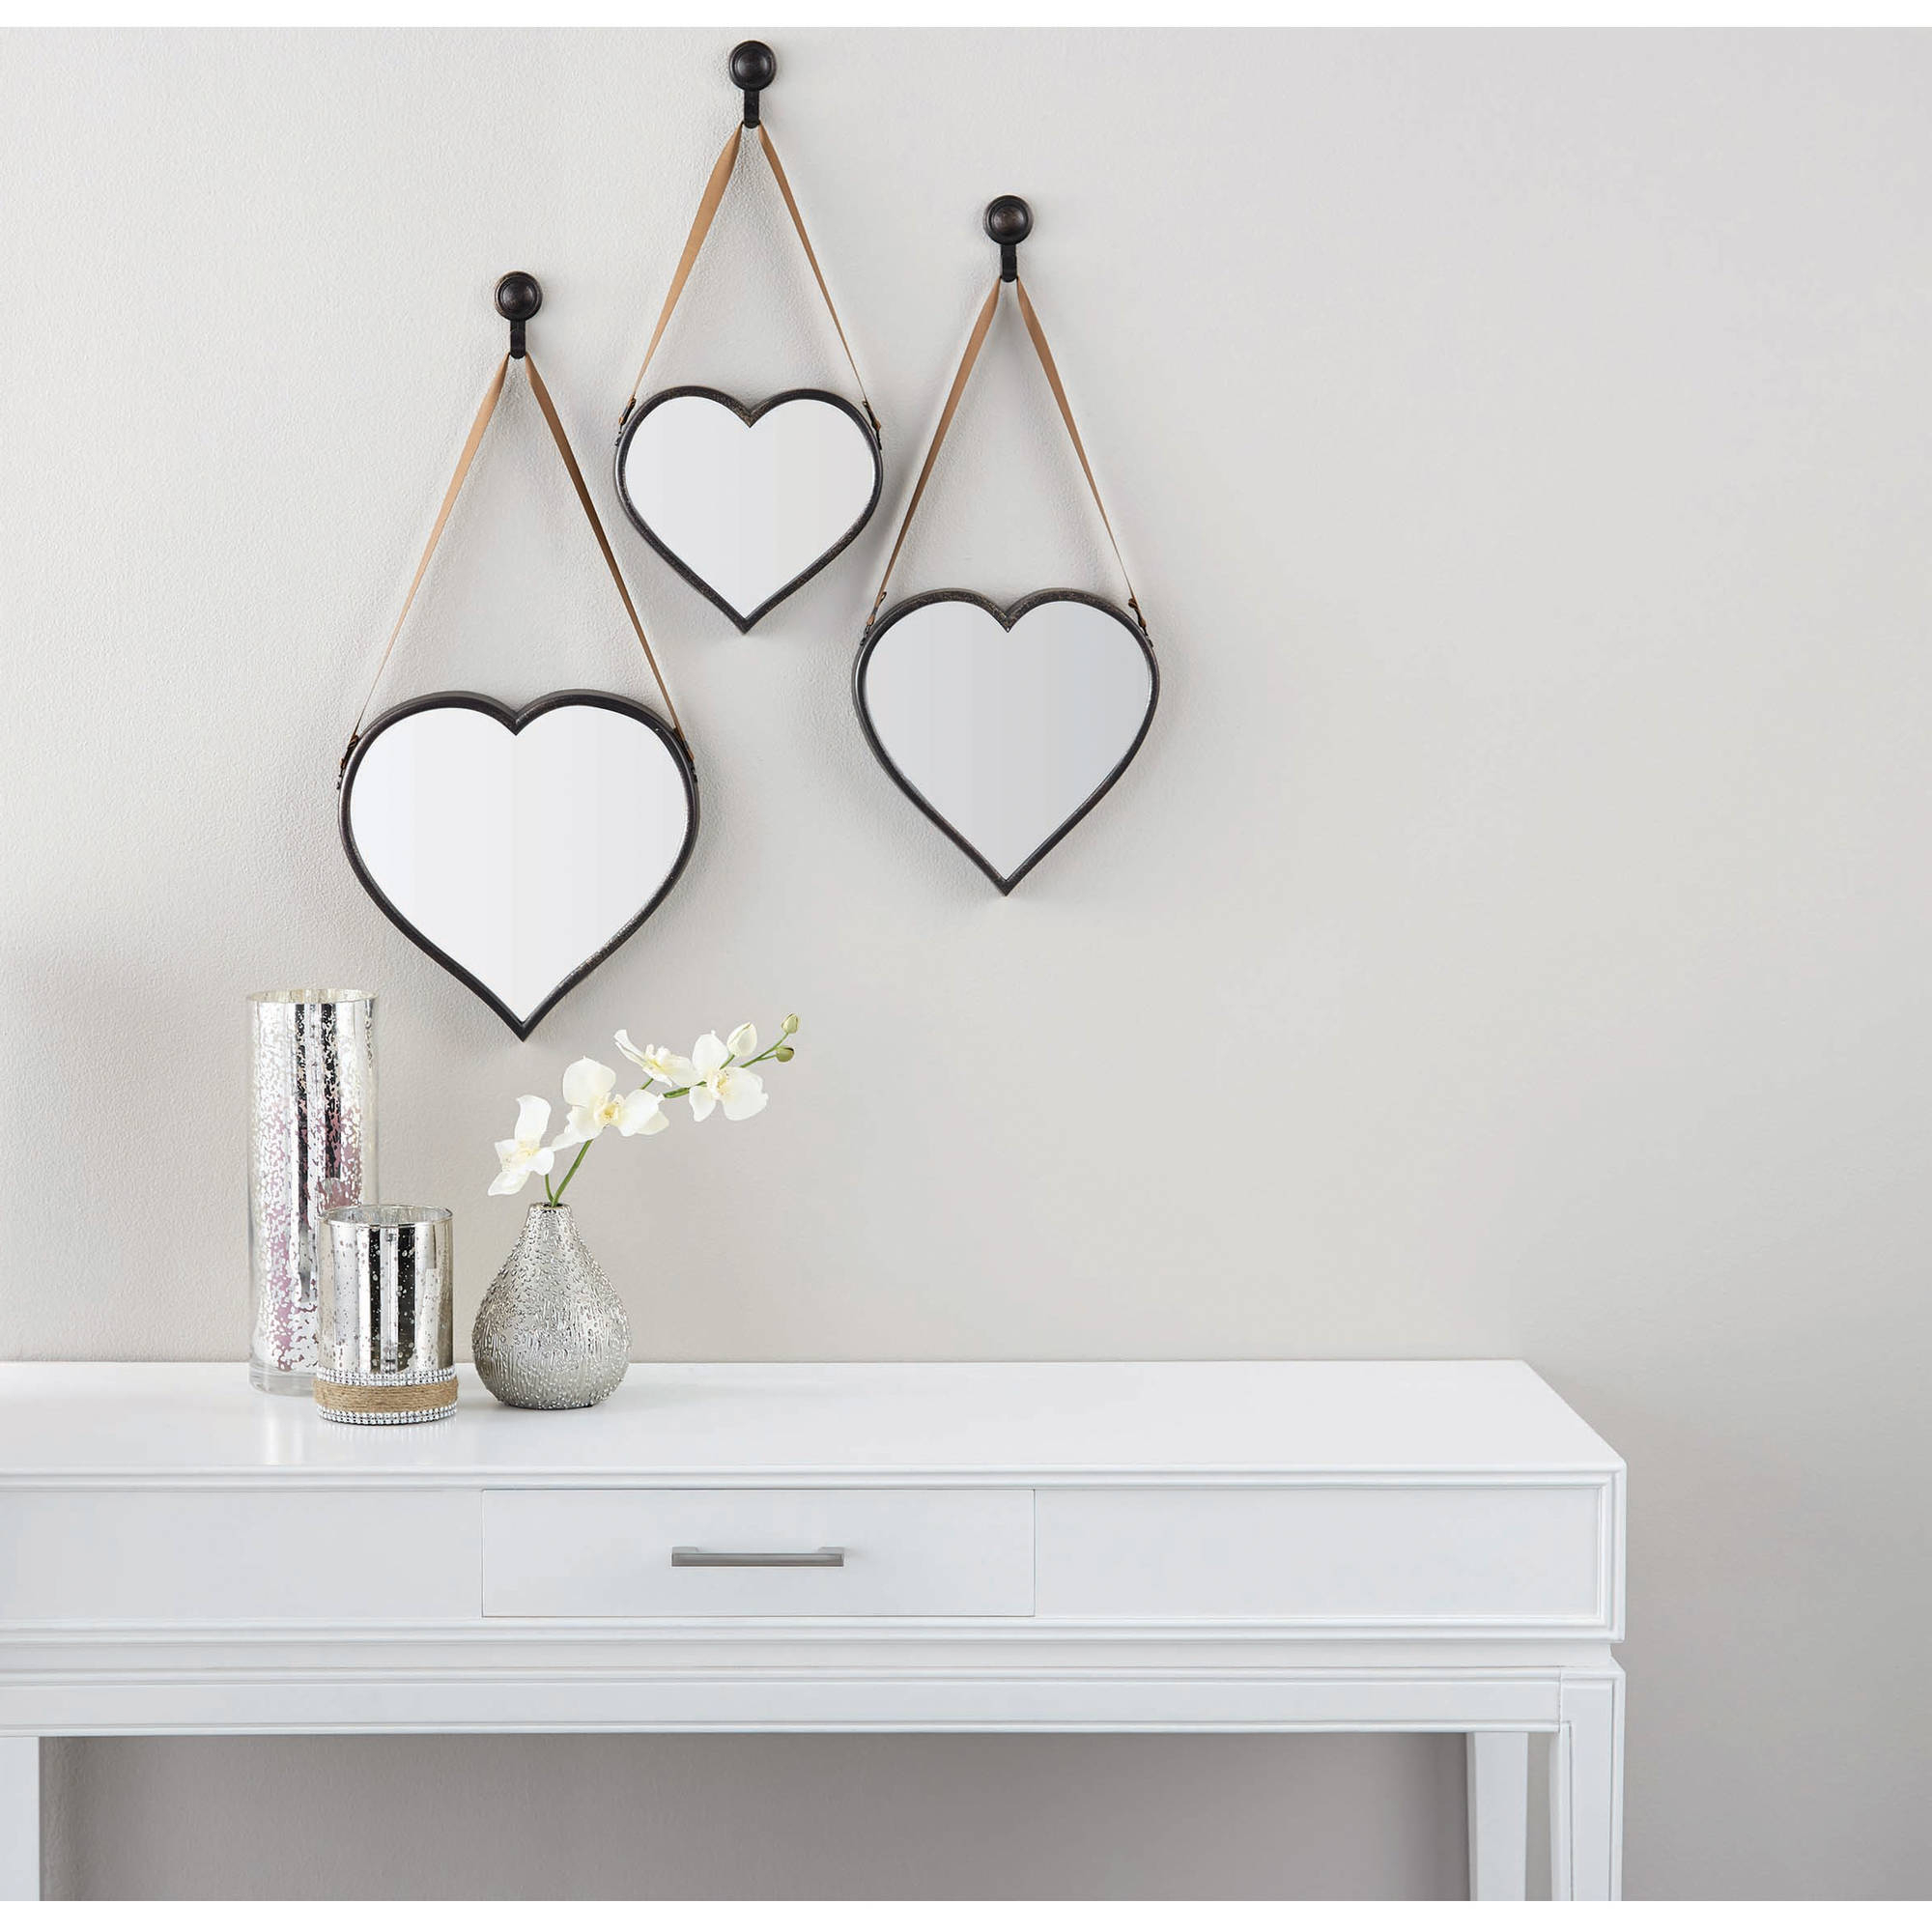 Trendy Mainstays 3 Piece Heart Mirror Set Intended For Heart Wall Mirrors (View 18 of 20)